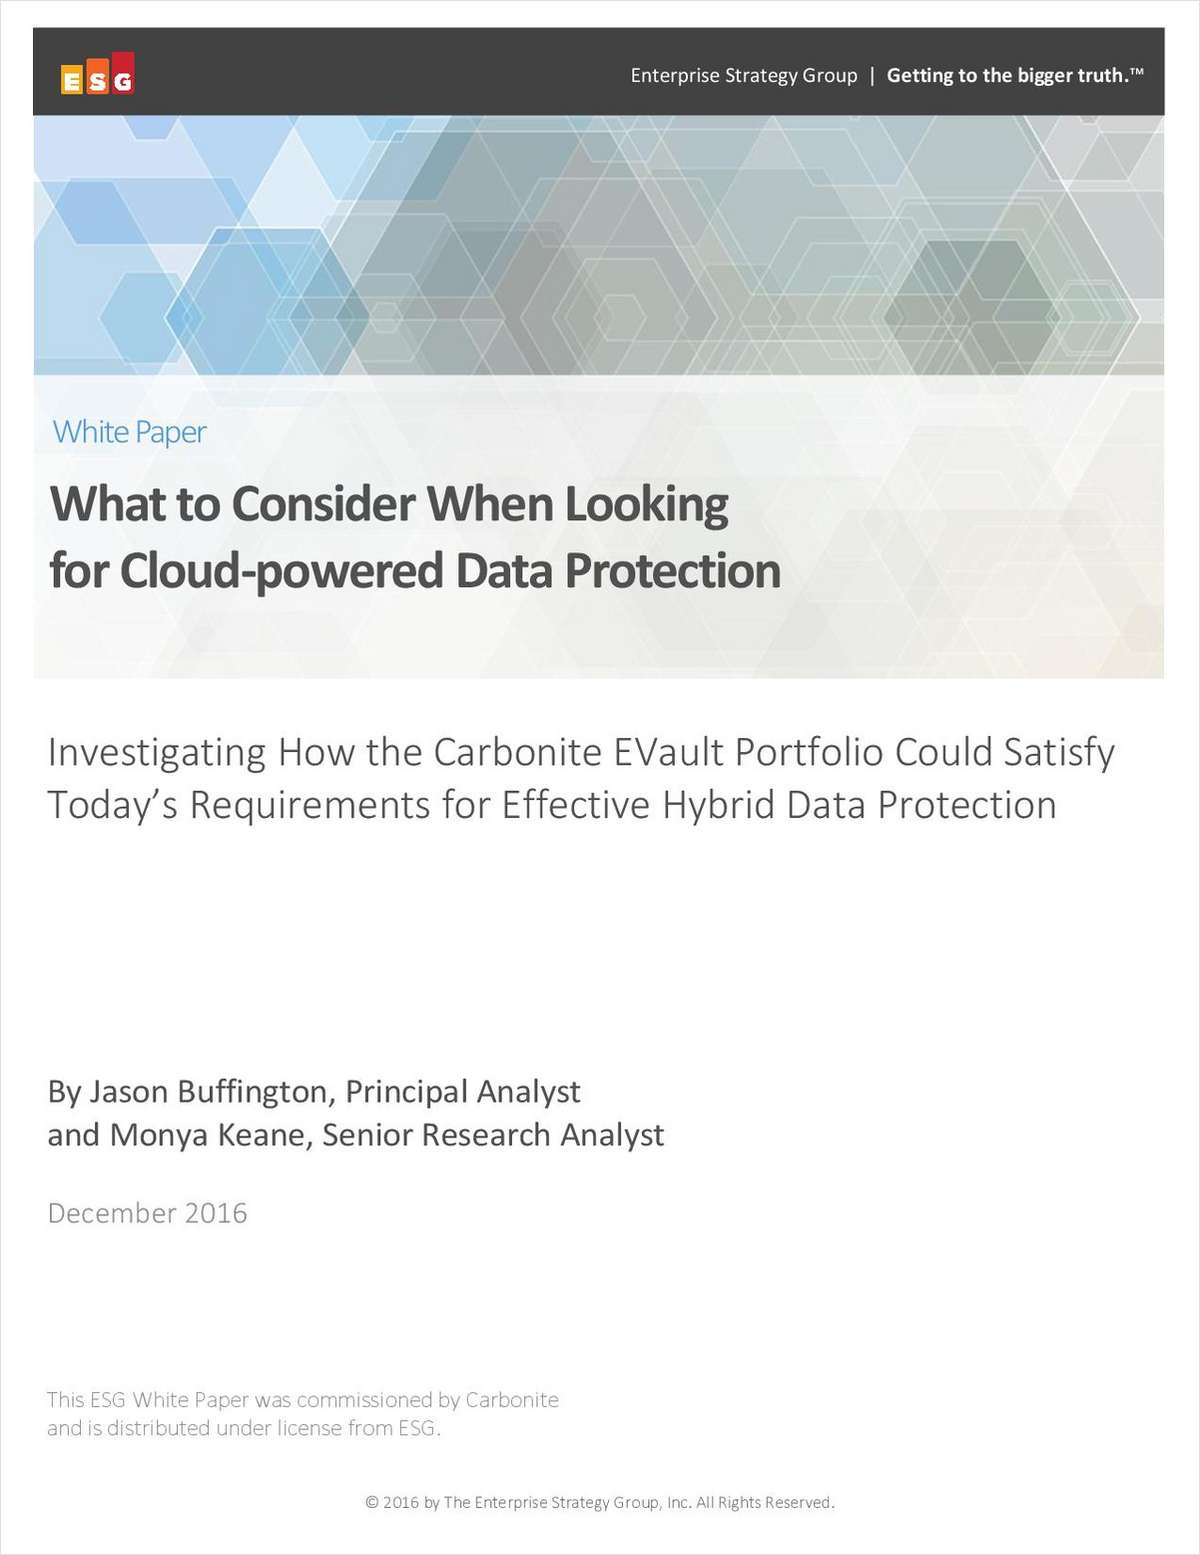 What to Consider When Looking  for Cloud-powered Data Protection